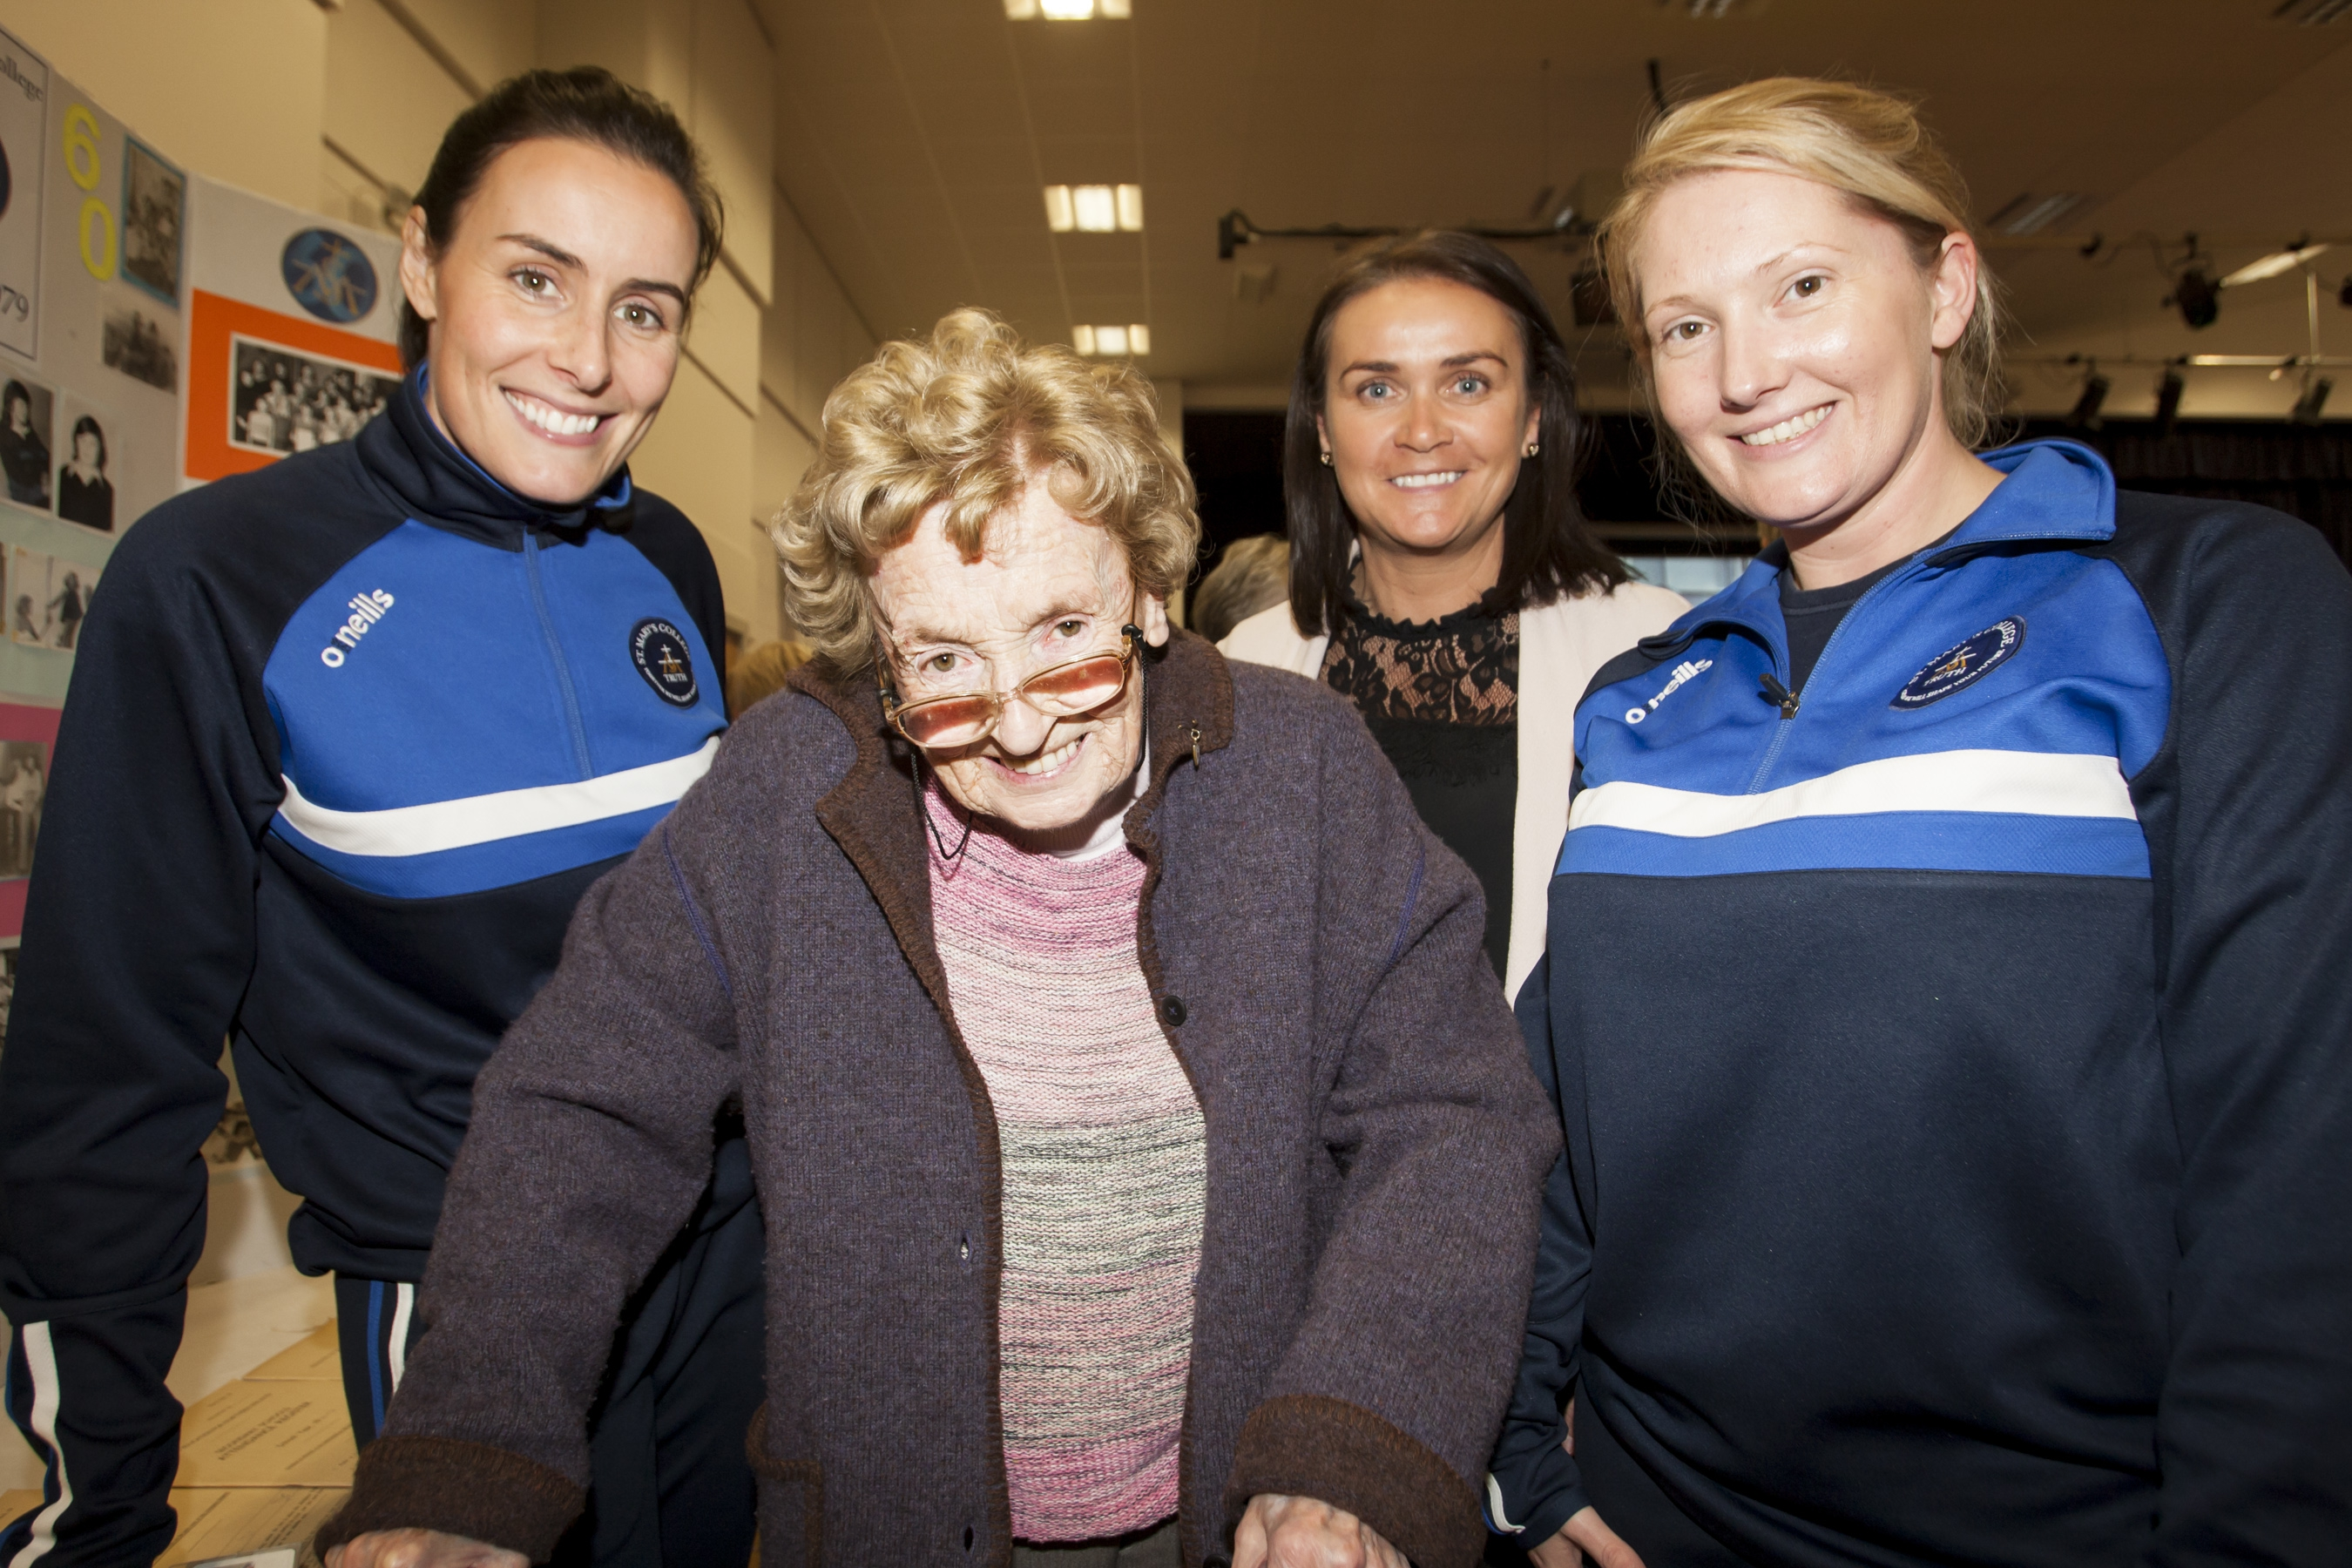 The first PE teacher at St. Mary's College in 1959, Ms. Dorett Gillen pictured with the present PE staff, Claire Bell, Colleen Gibbons and Jenny Martin on Friday.